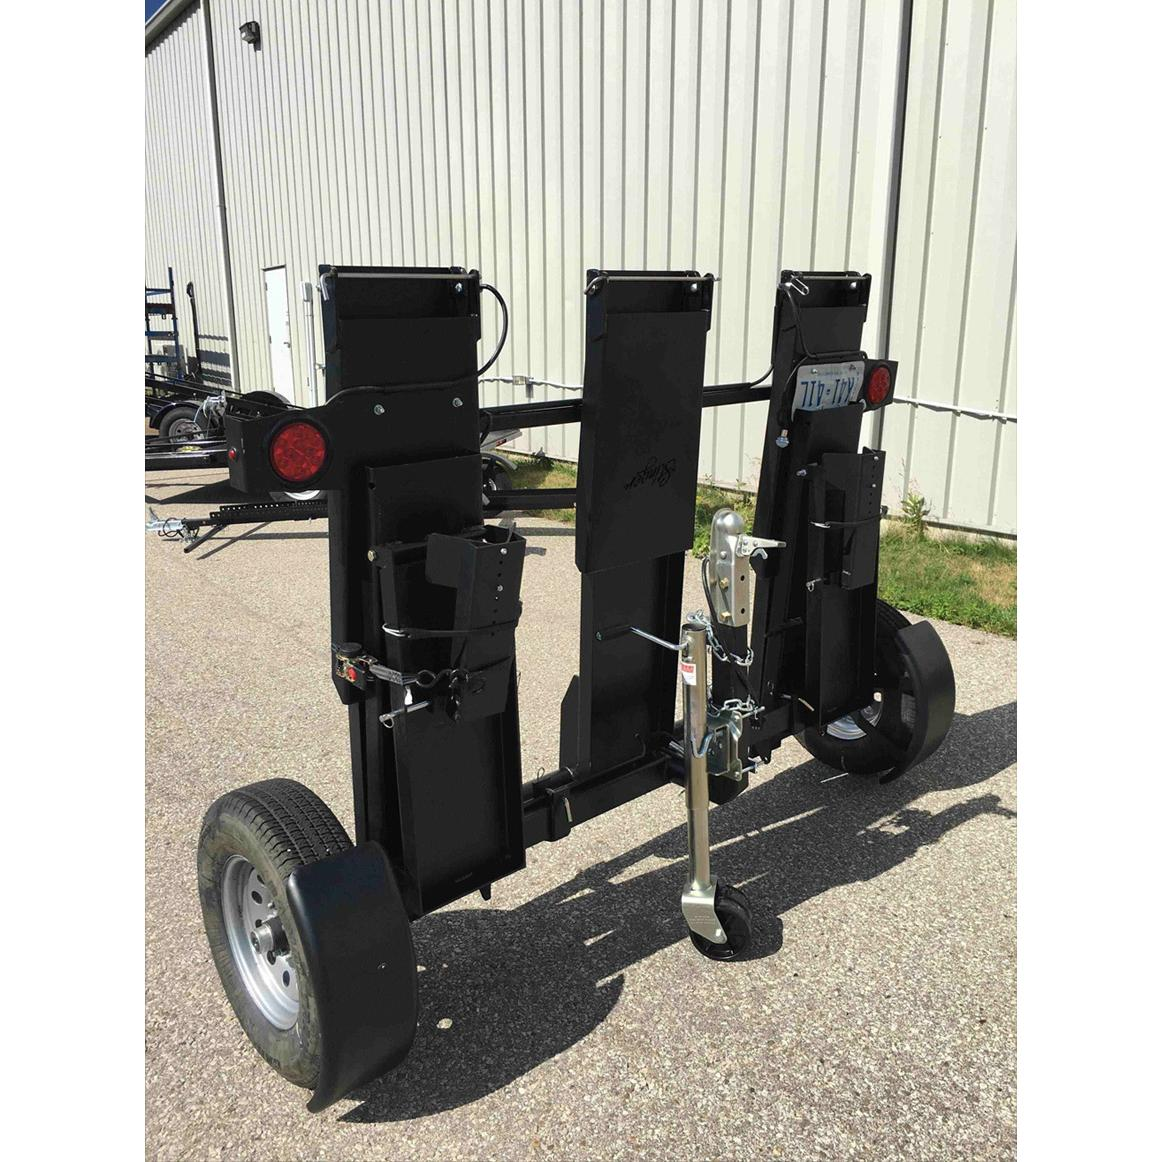 Stinger Can Am Spyder Trailer Free Shipping